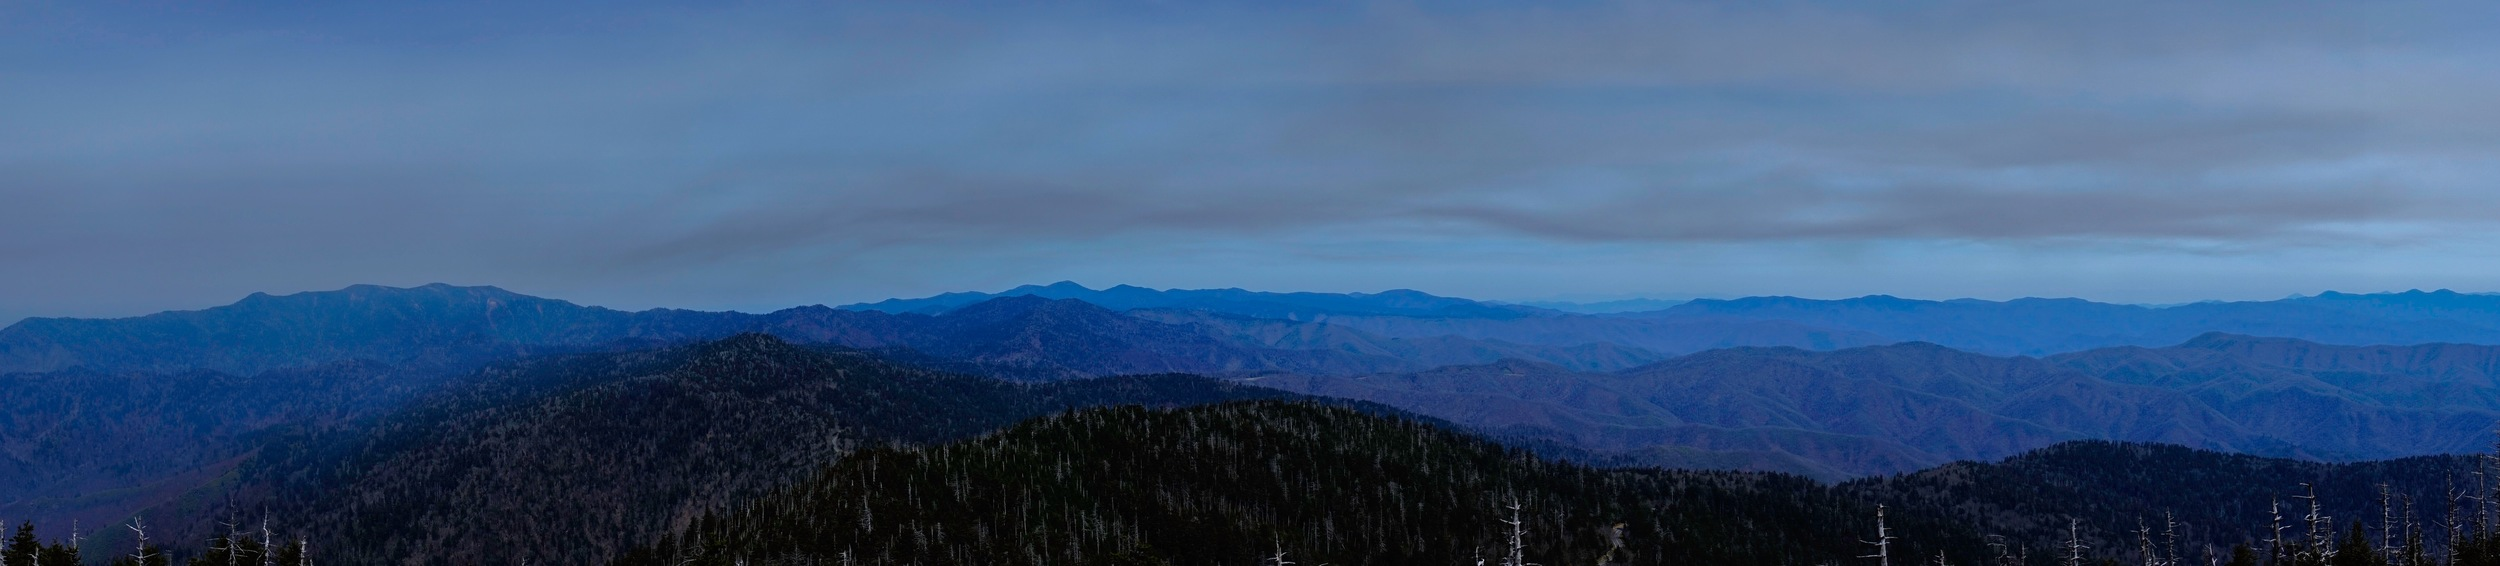 The highest point in the Smoky Mountains, Clingman's Dome.